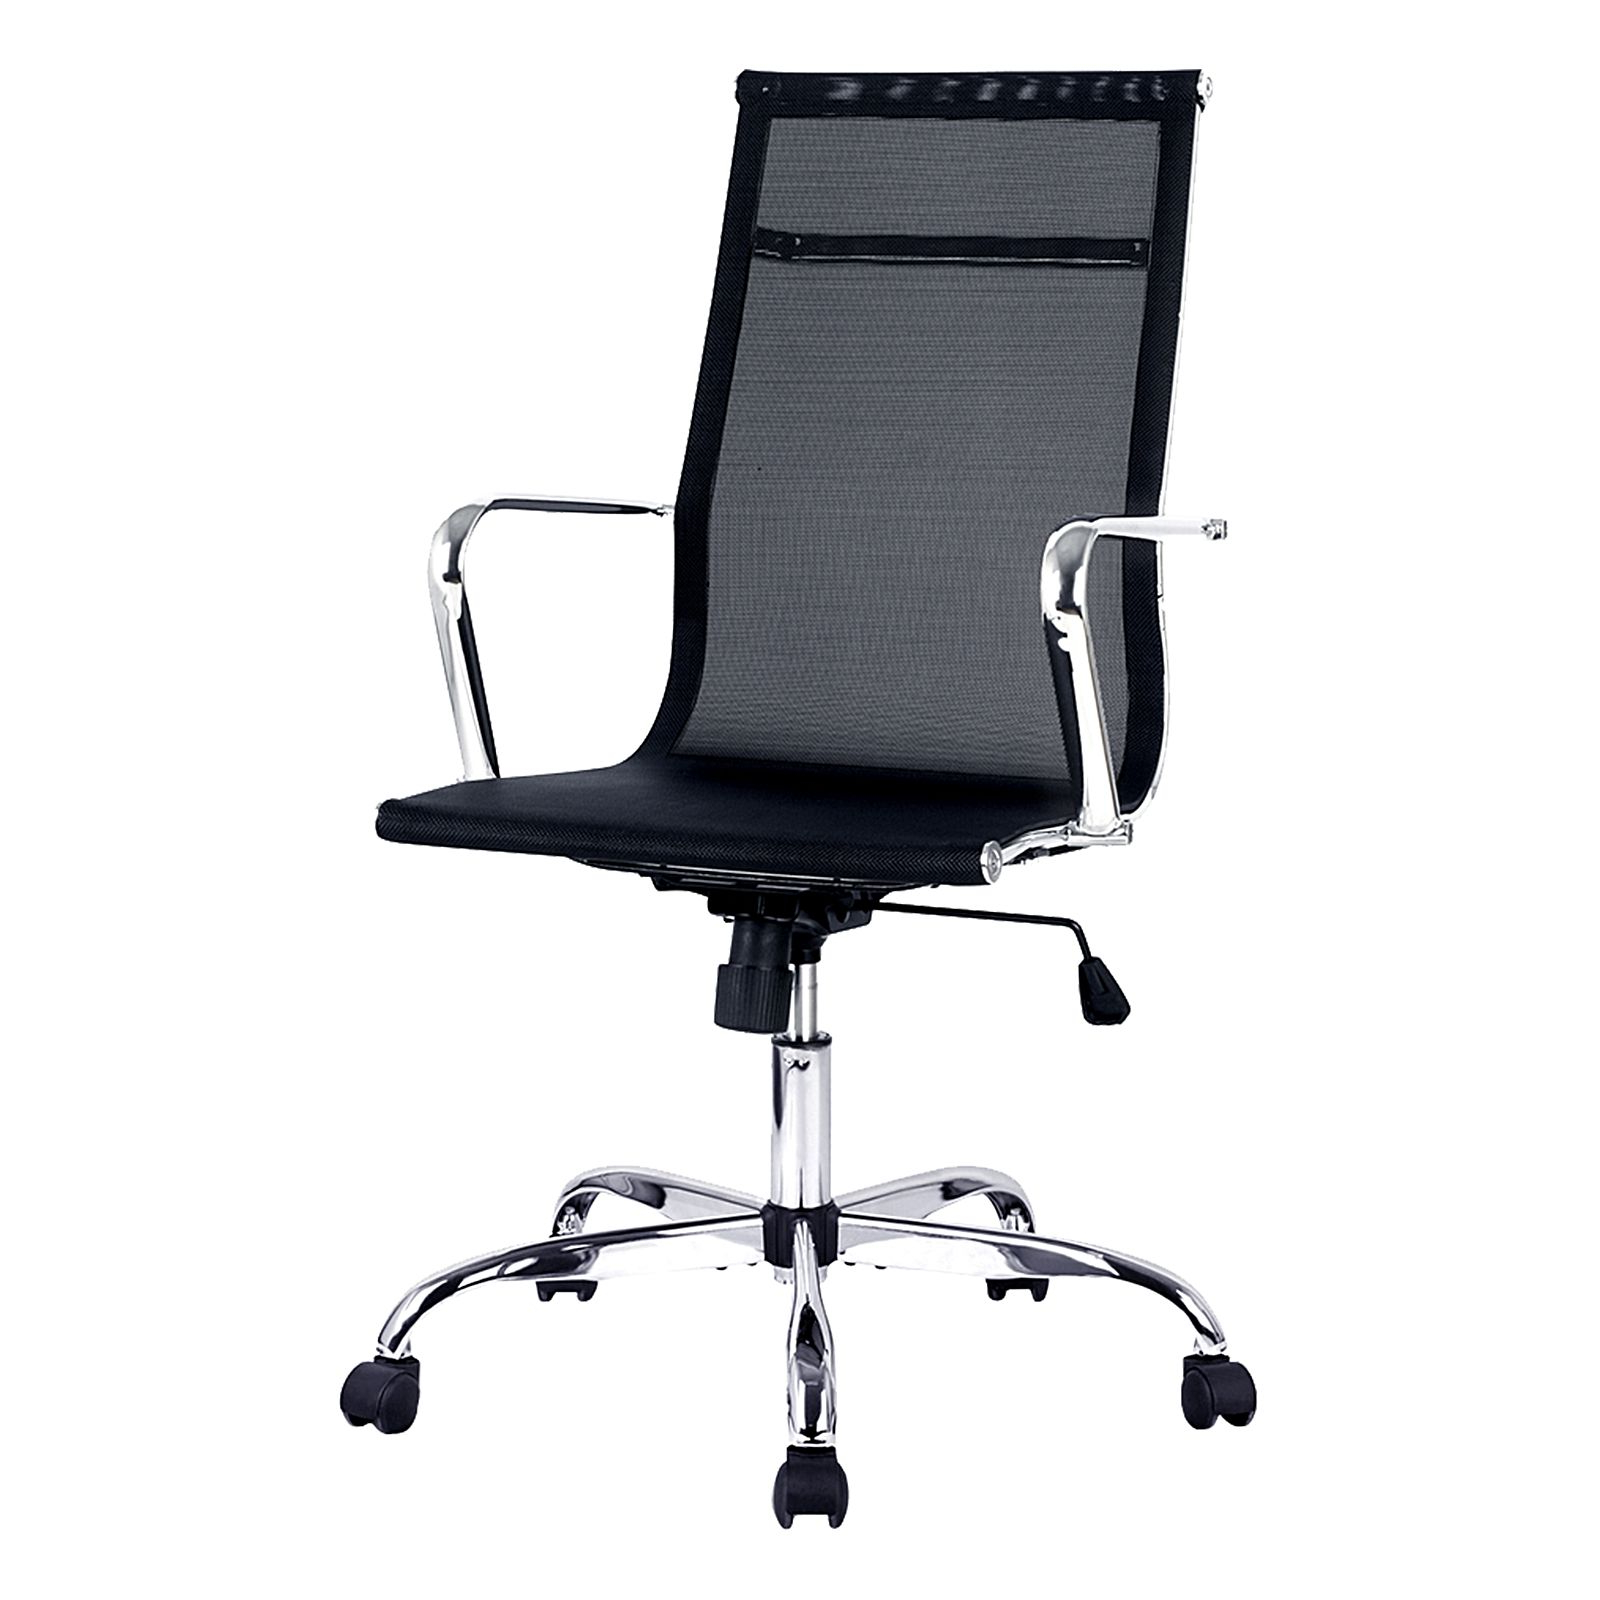 Office Chairs Nkde Eames Replica Mesh Executive Office Chair Black